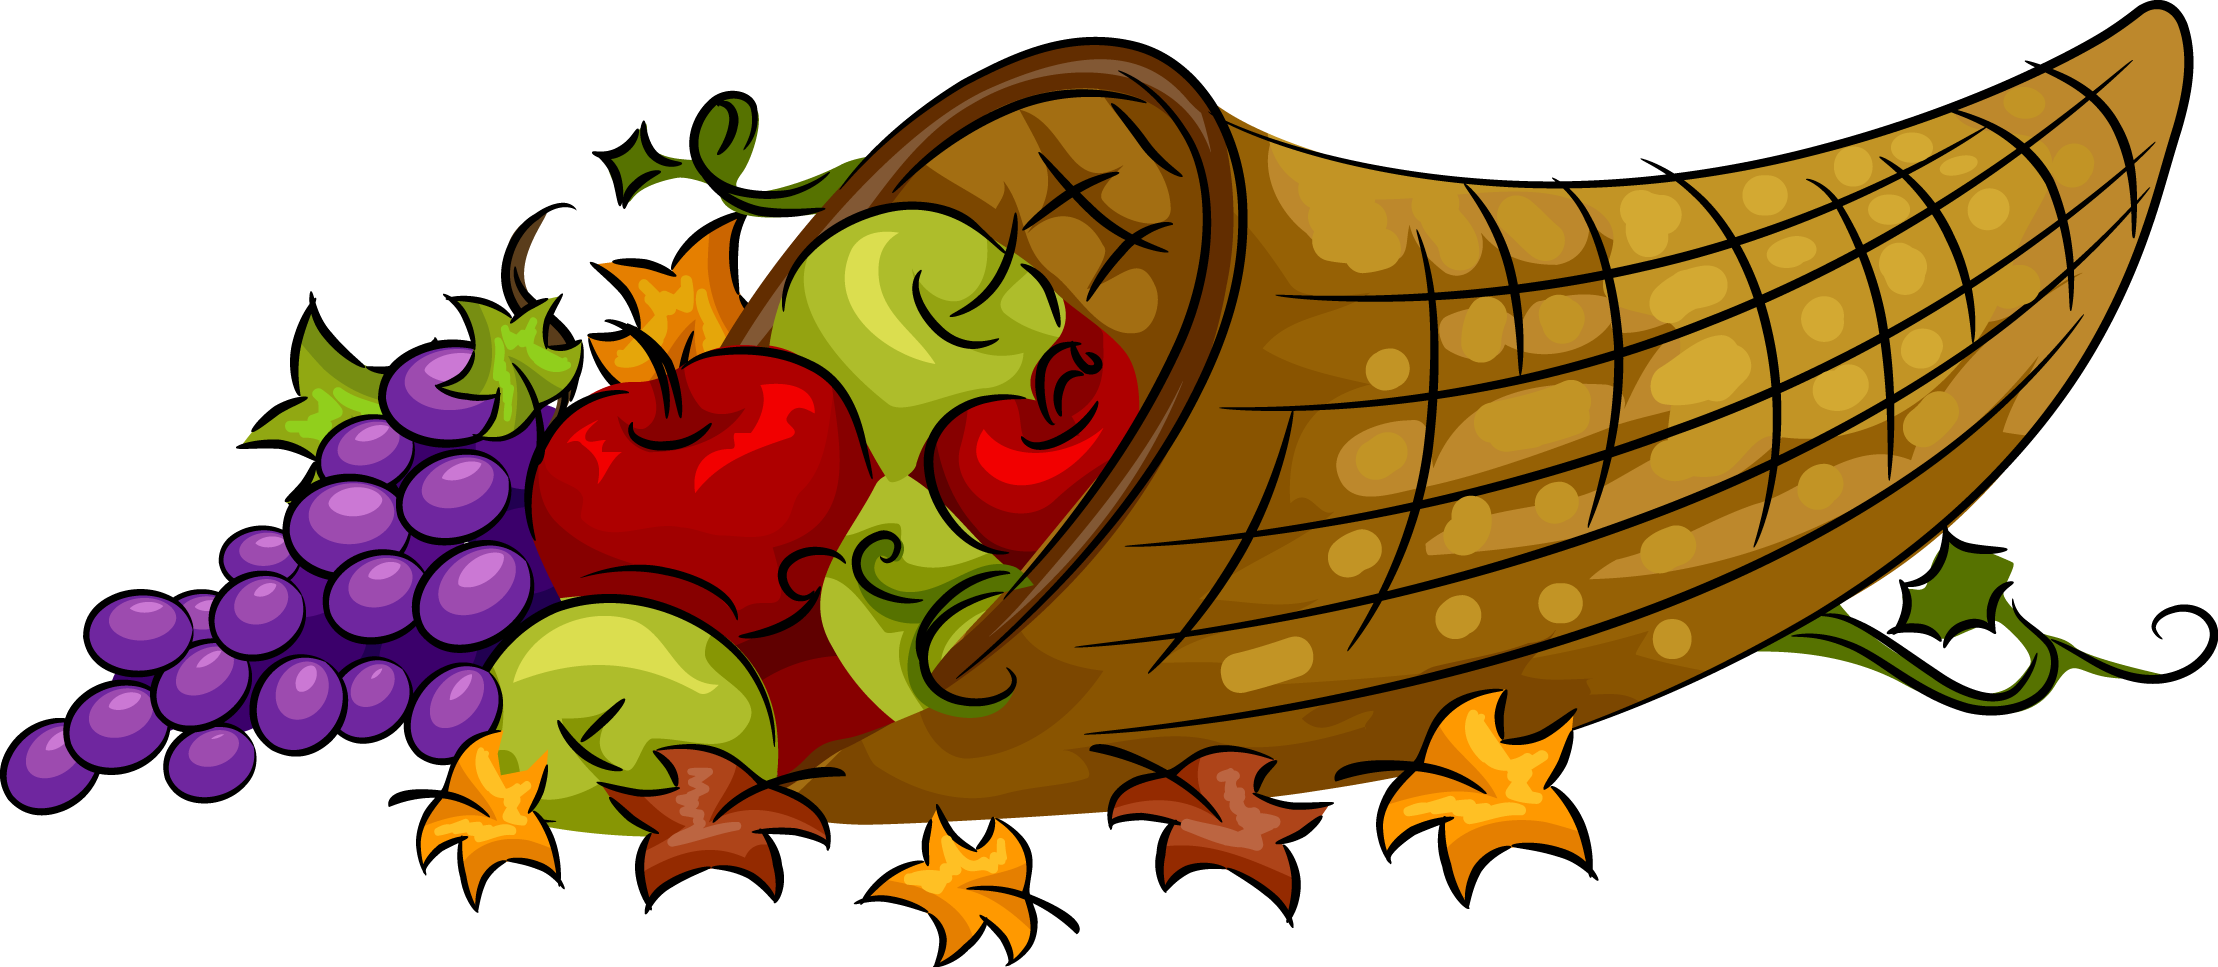 Feast drawing cornucopia. Thanksgiving clipart at getdrawings